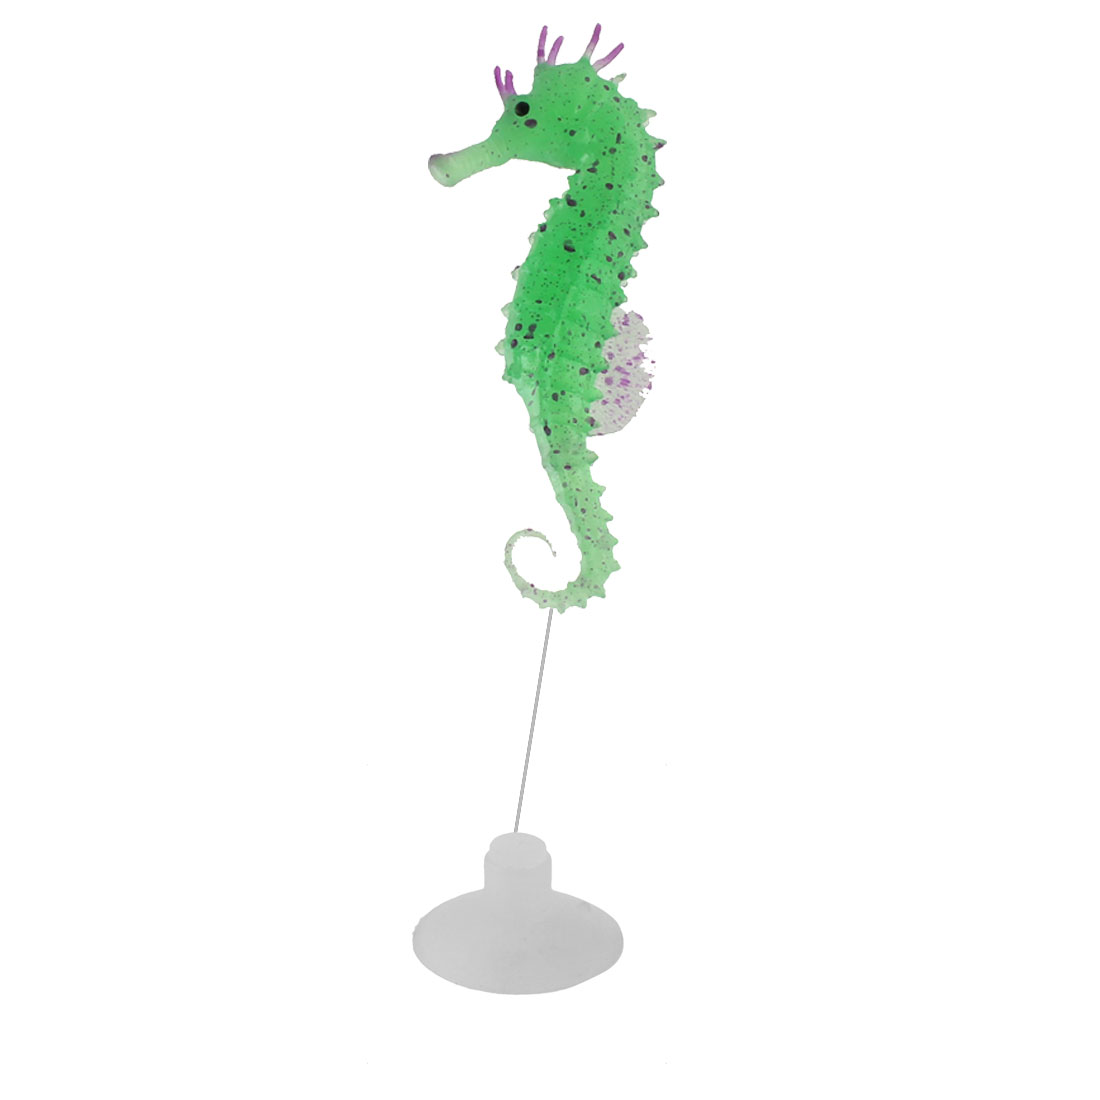 Aquarium Silicone Floating Artificial Glowing Seahorse Decoration Ornament Green